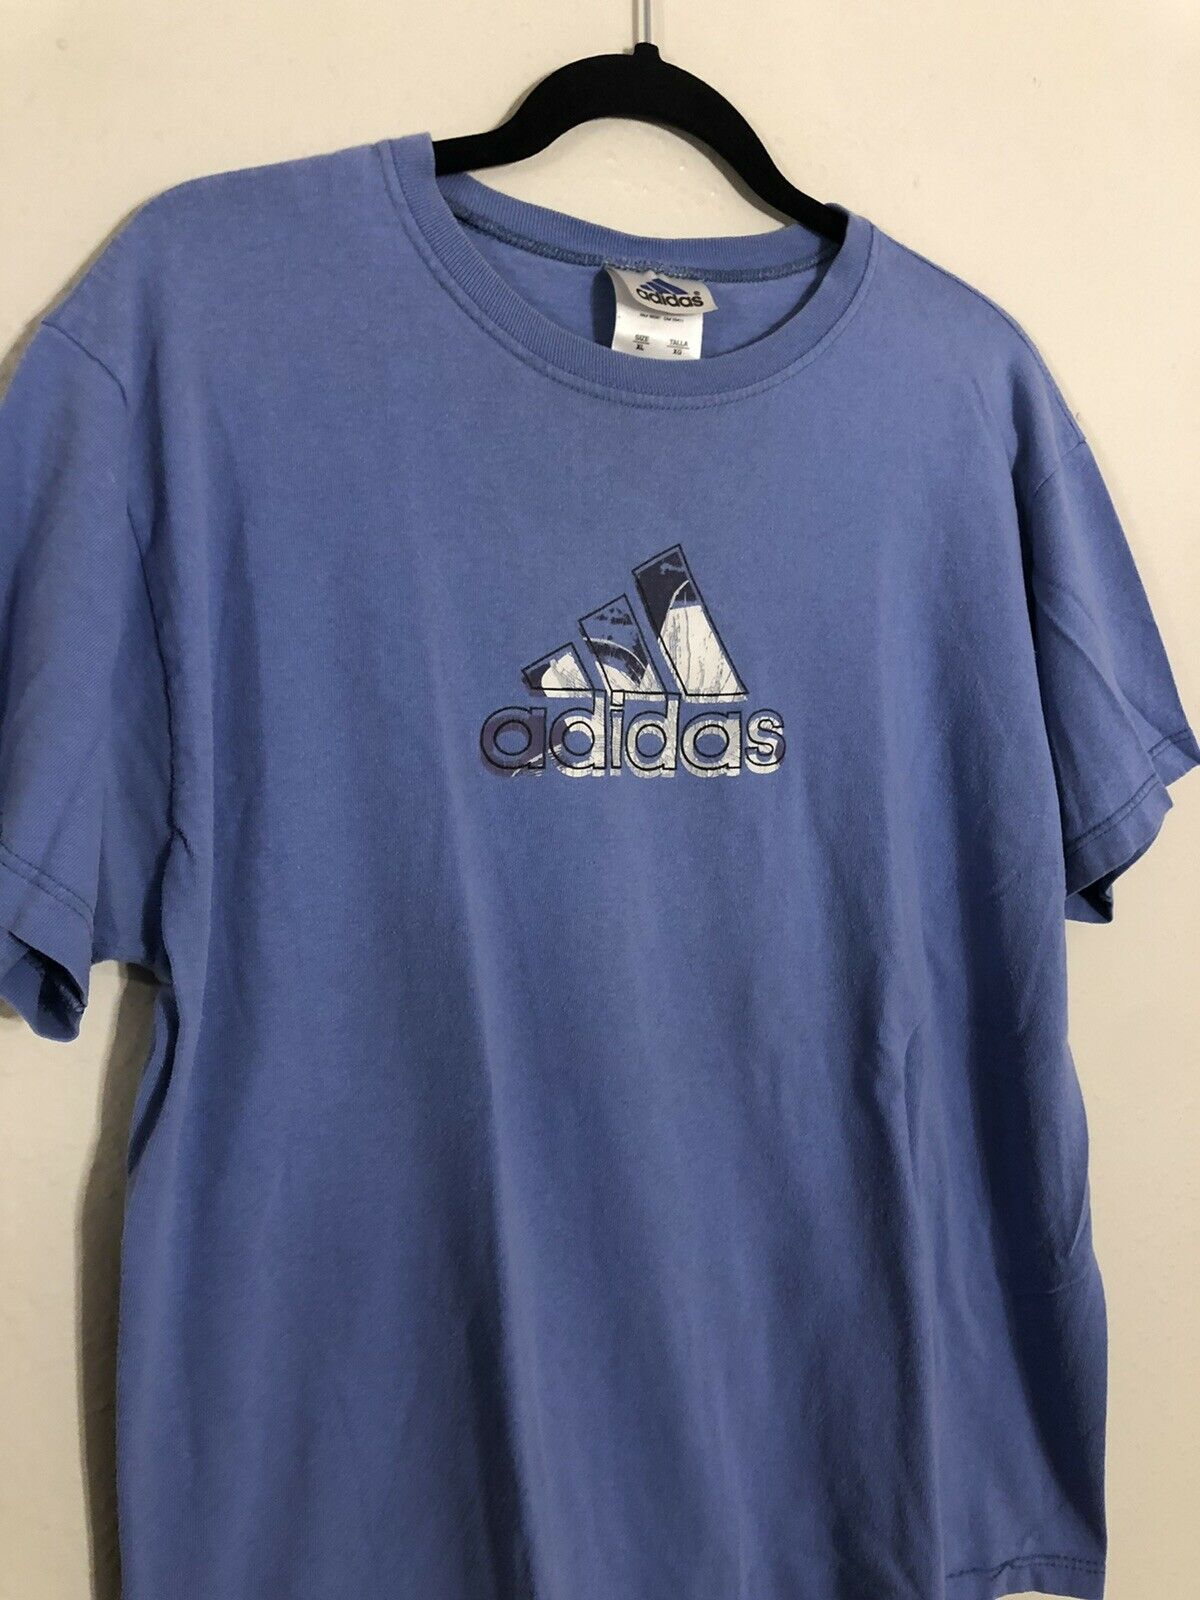 Vintage 1990s Adidas T-Shirt, Made In USA Blue Youth XL, Adult S